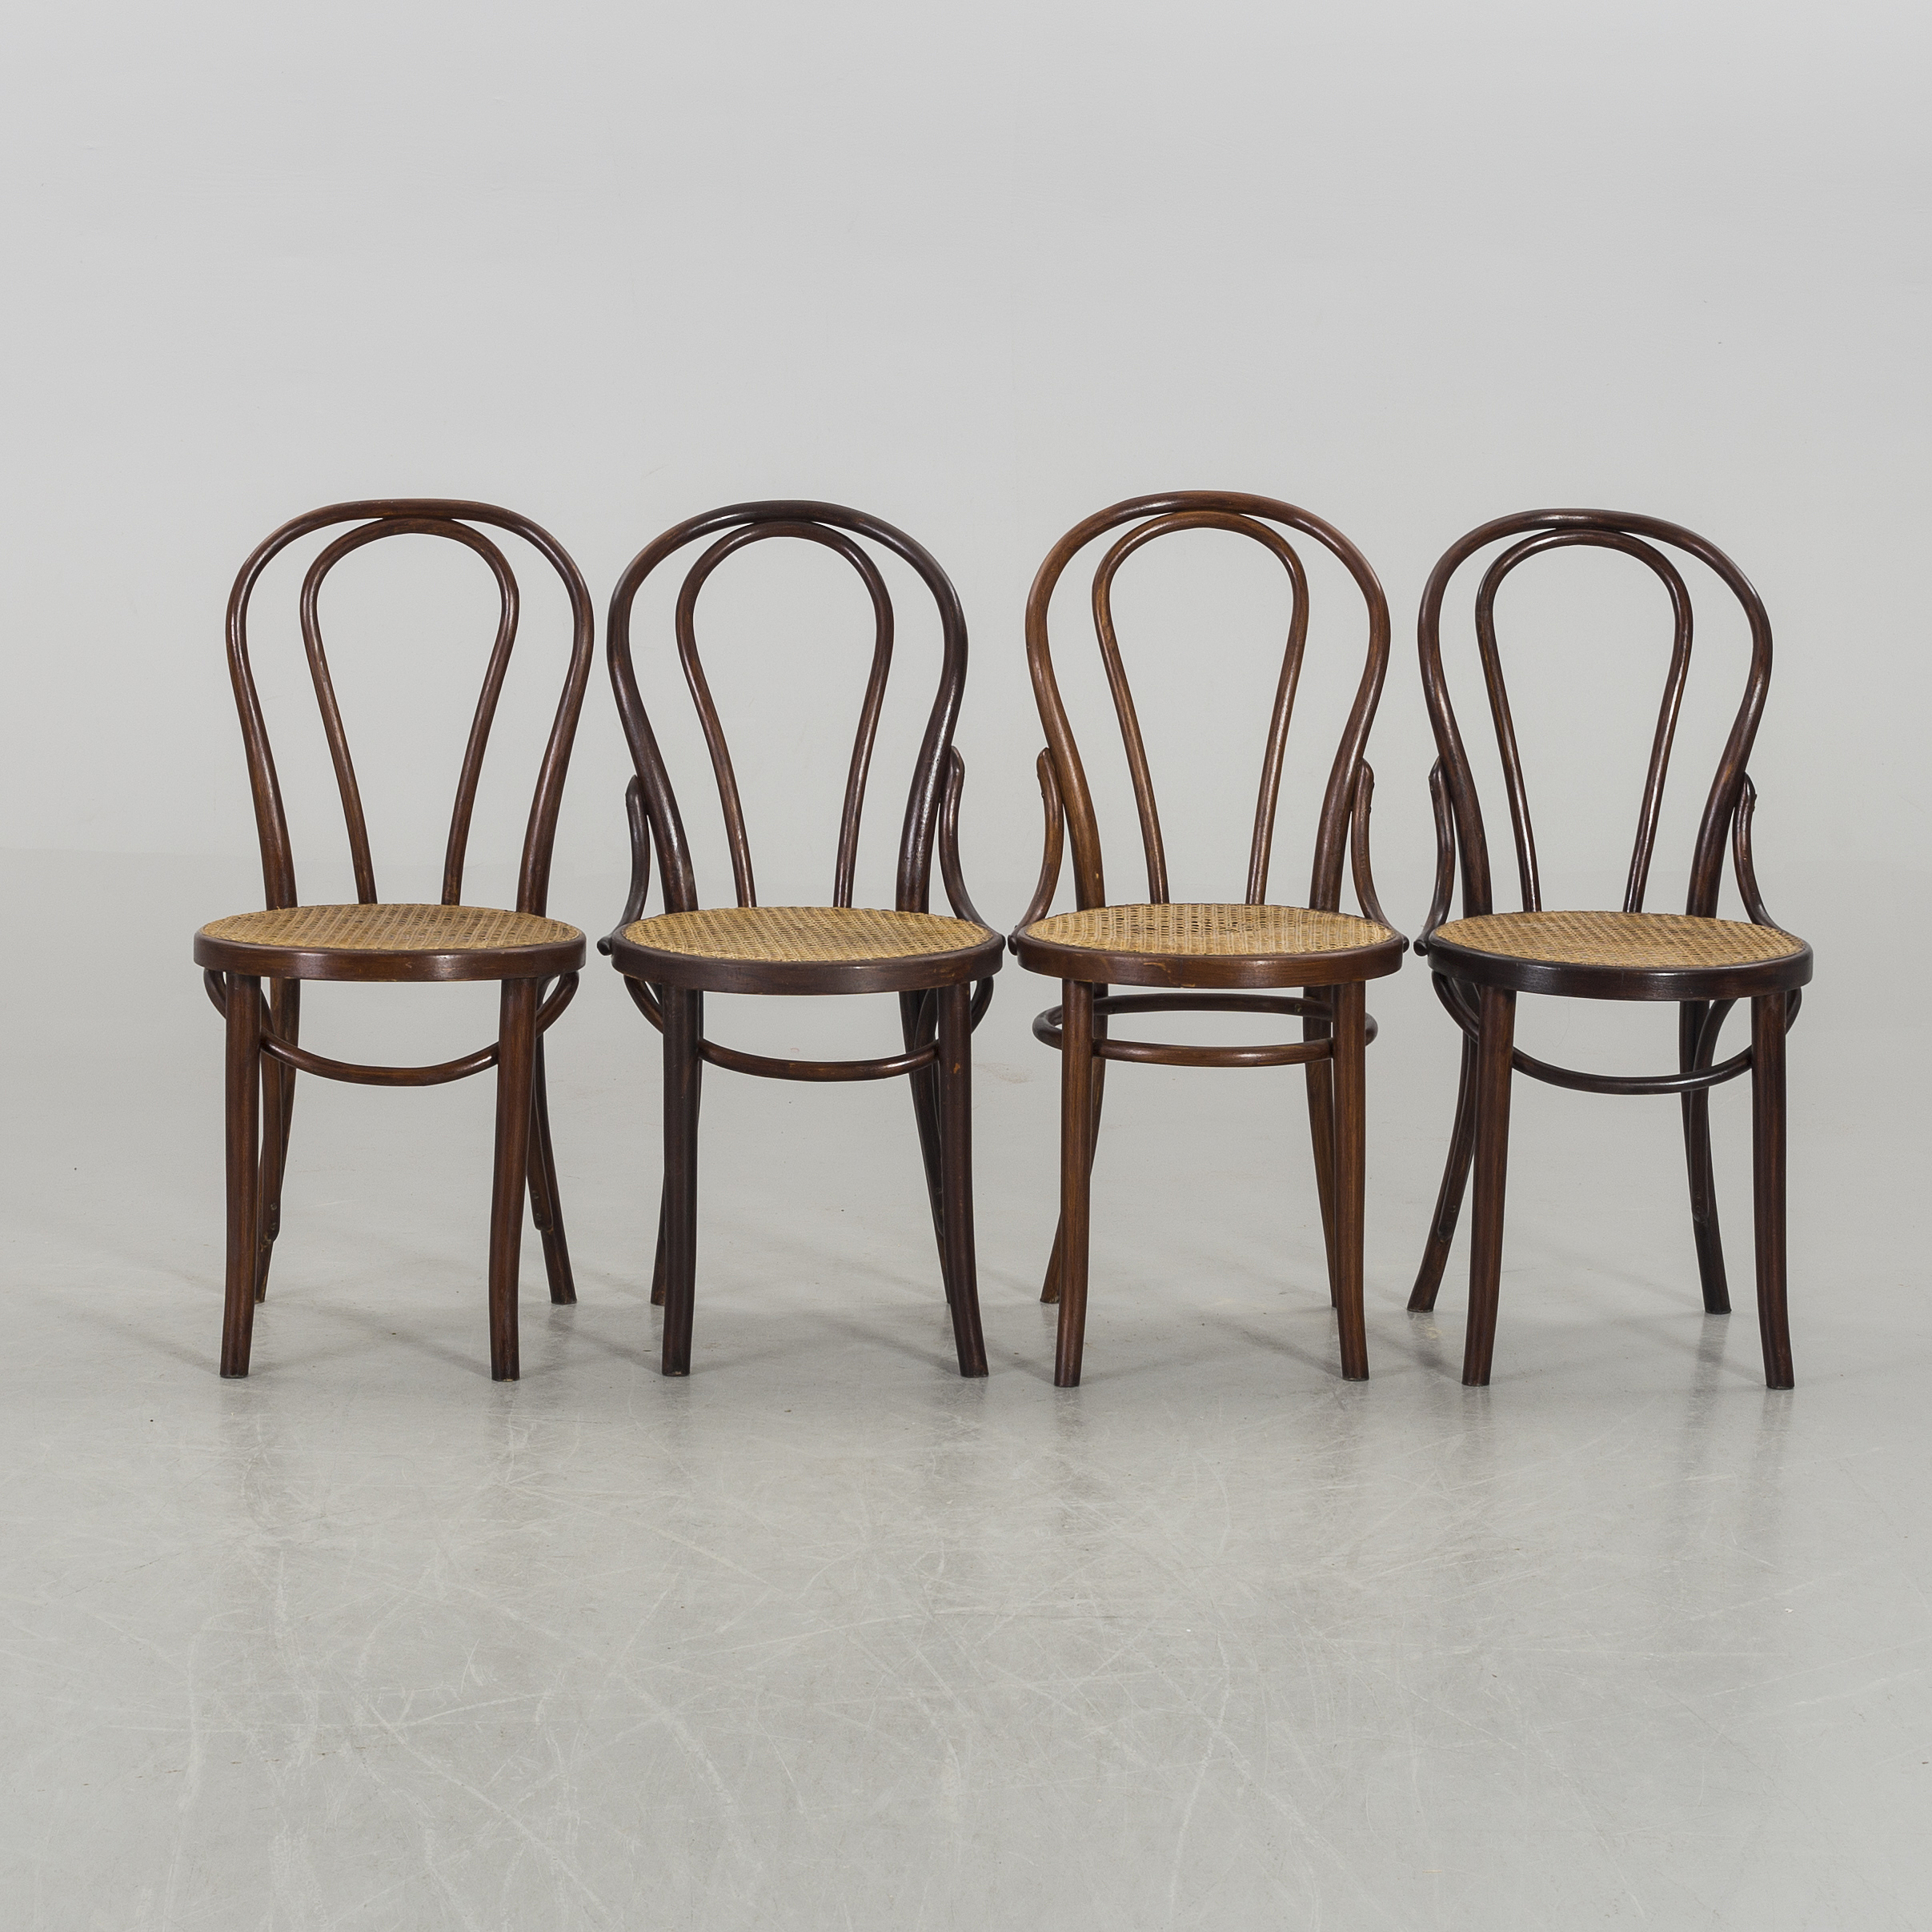 Ten similar Thonet-style chairs, 20th century first half